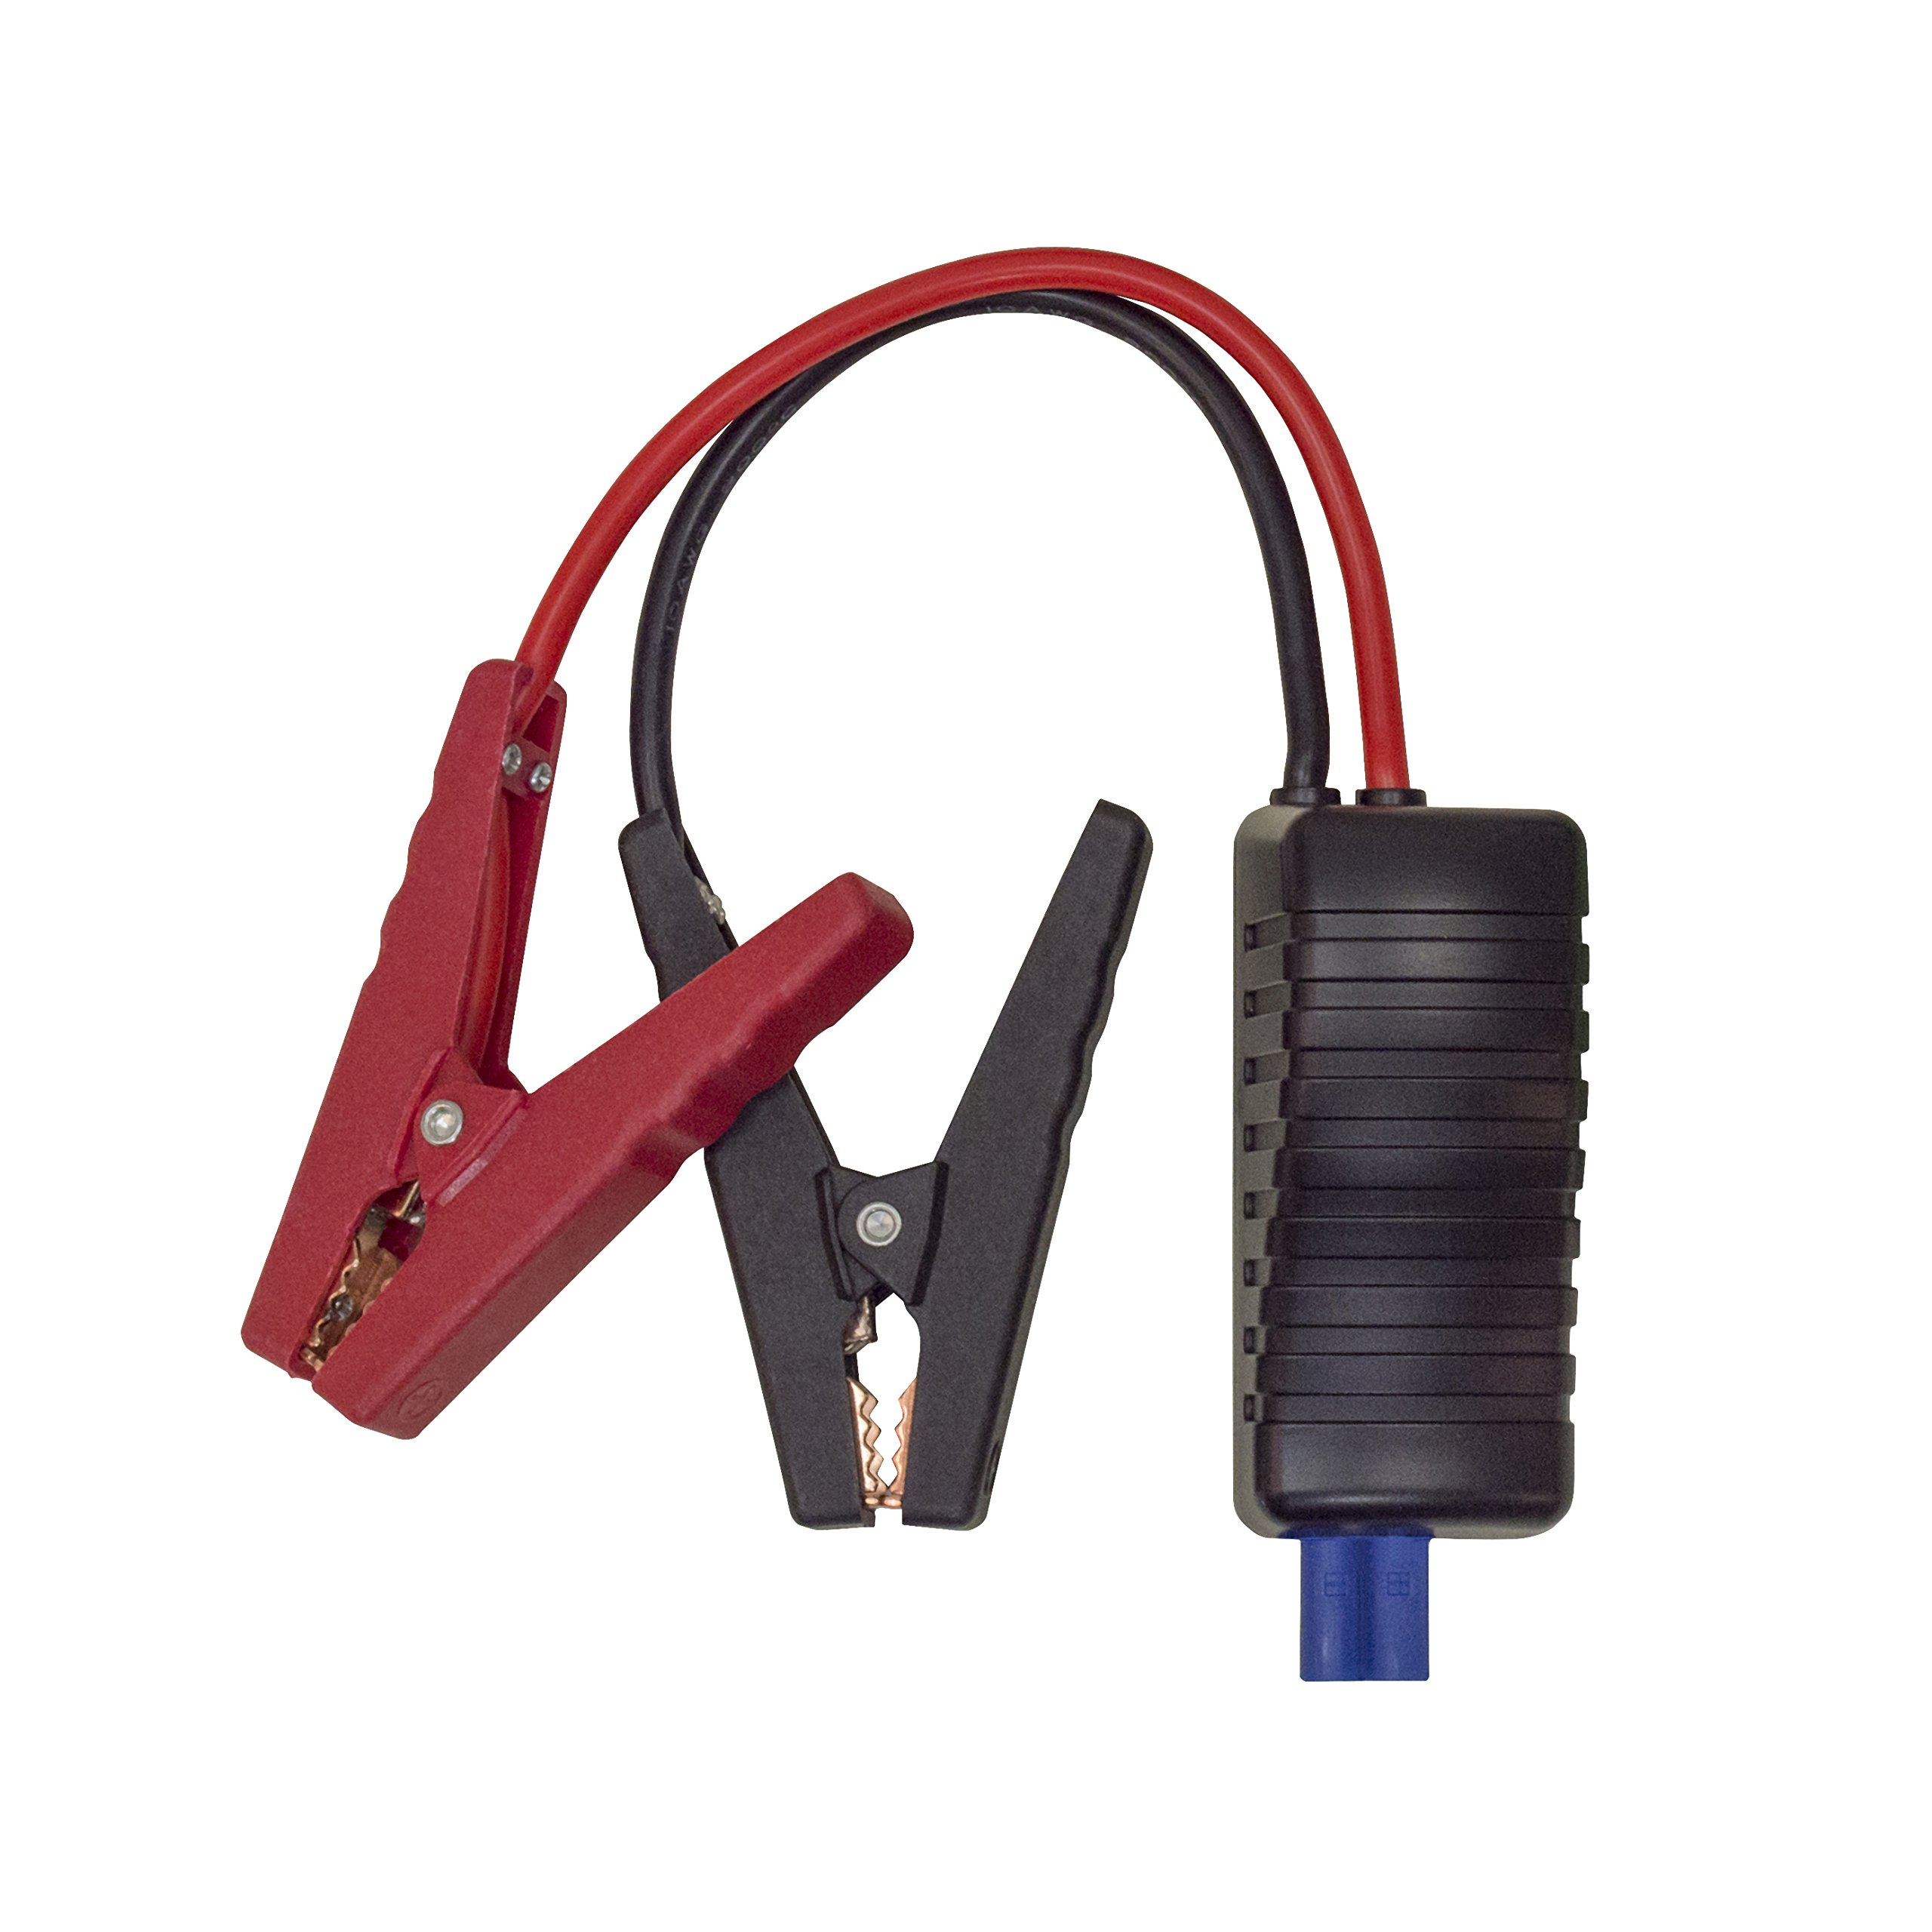 OEMTOOLS 24457 Replacement Smart Jump Cables for Personal Power System PPS-X by OEMTOOLS